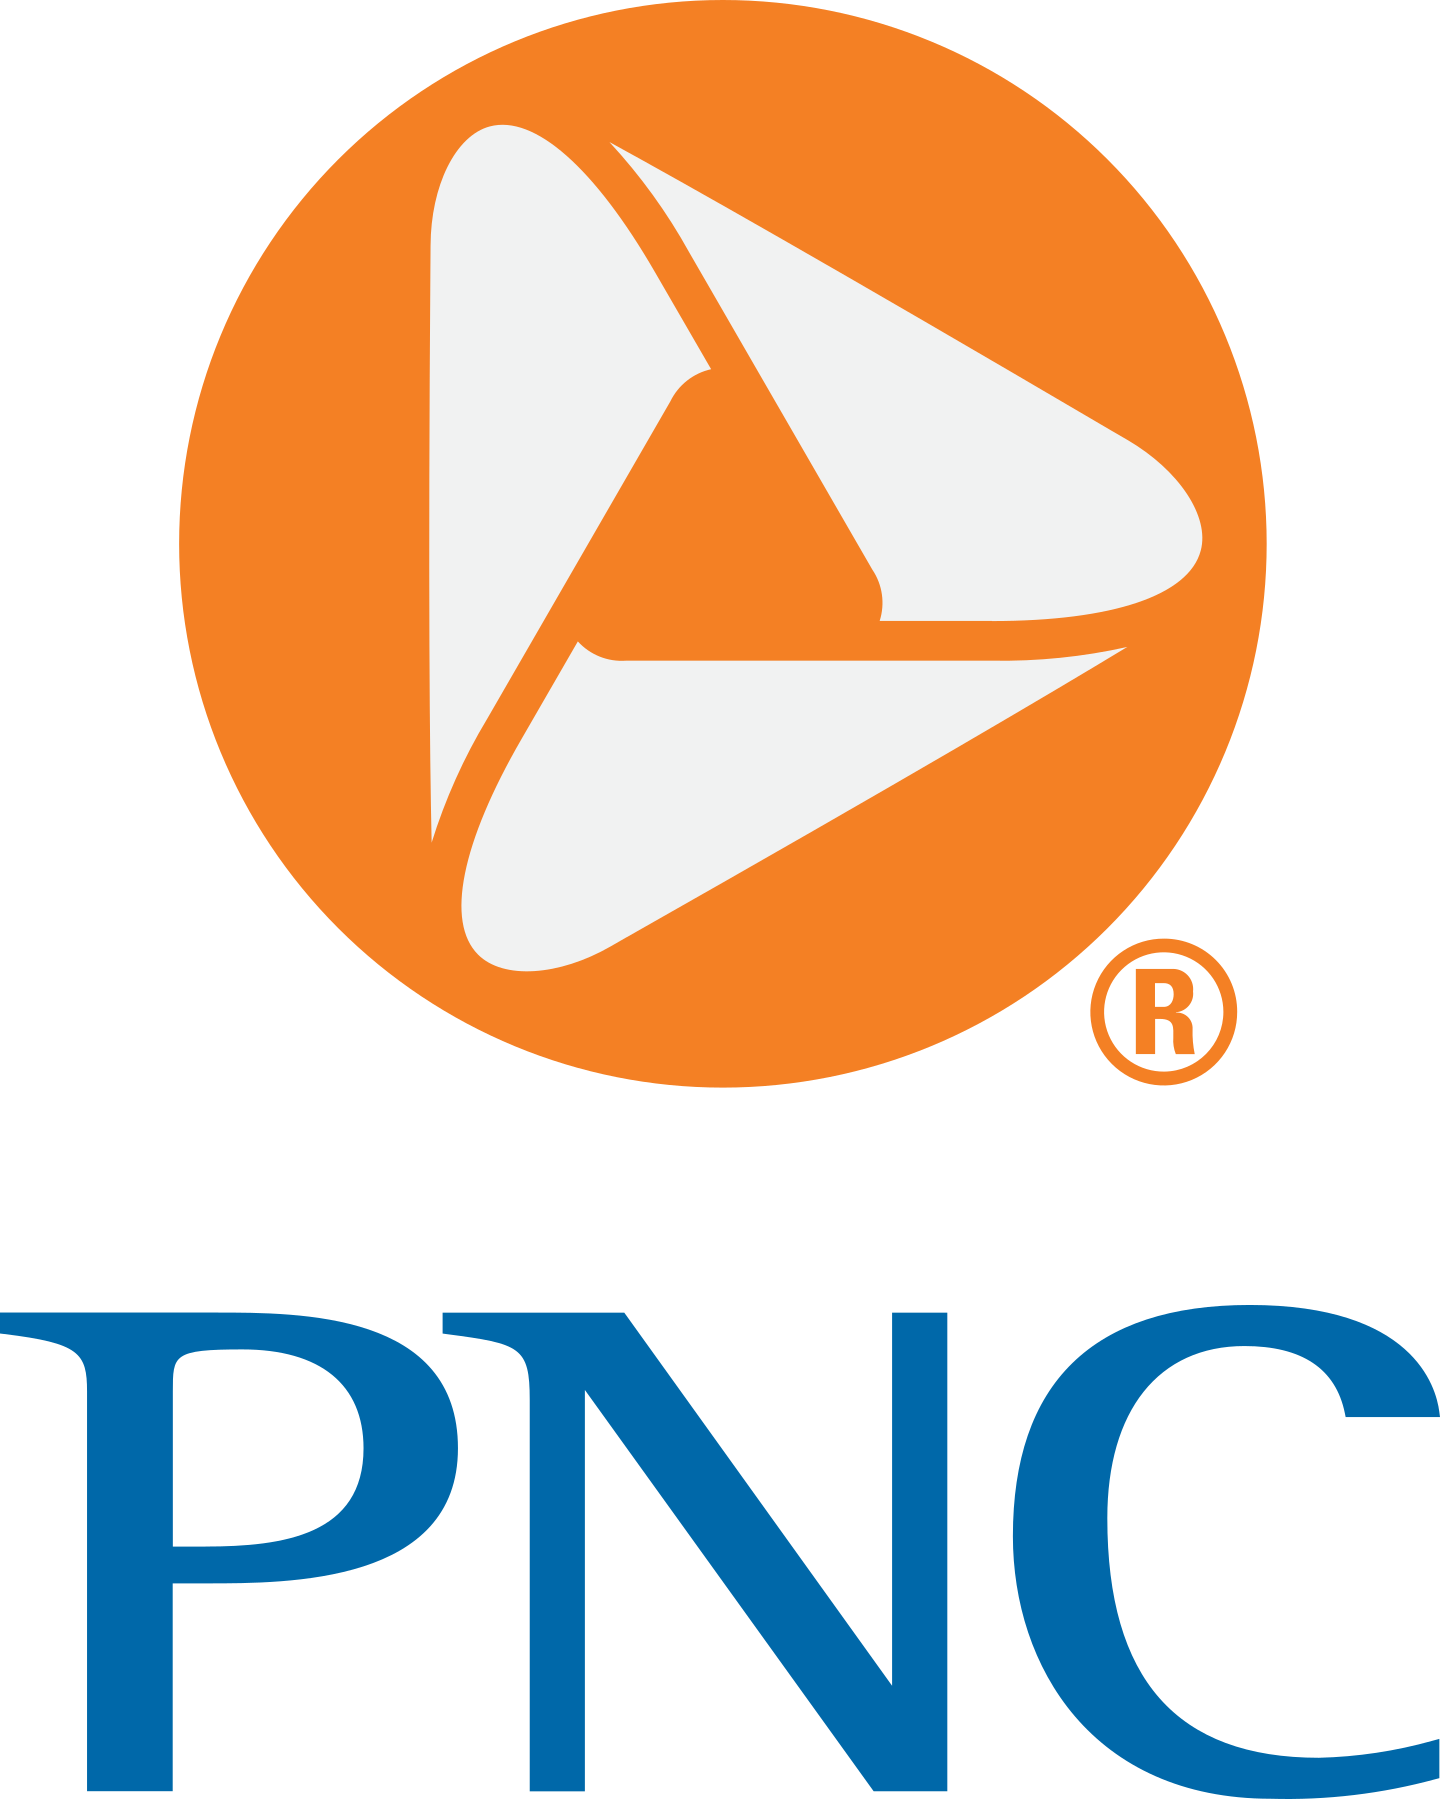 pnc bank logo 5 - PNC Bank Logo